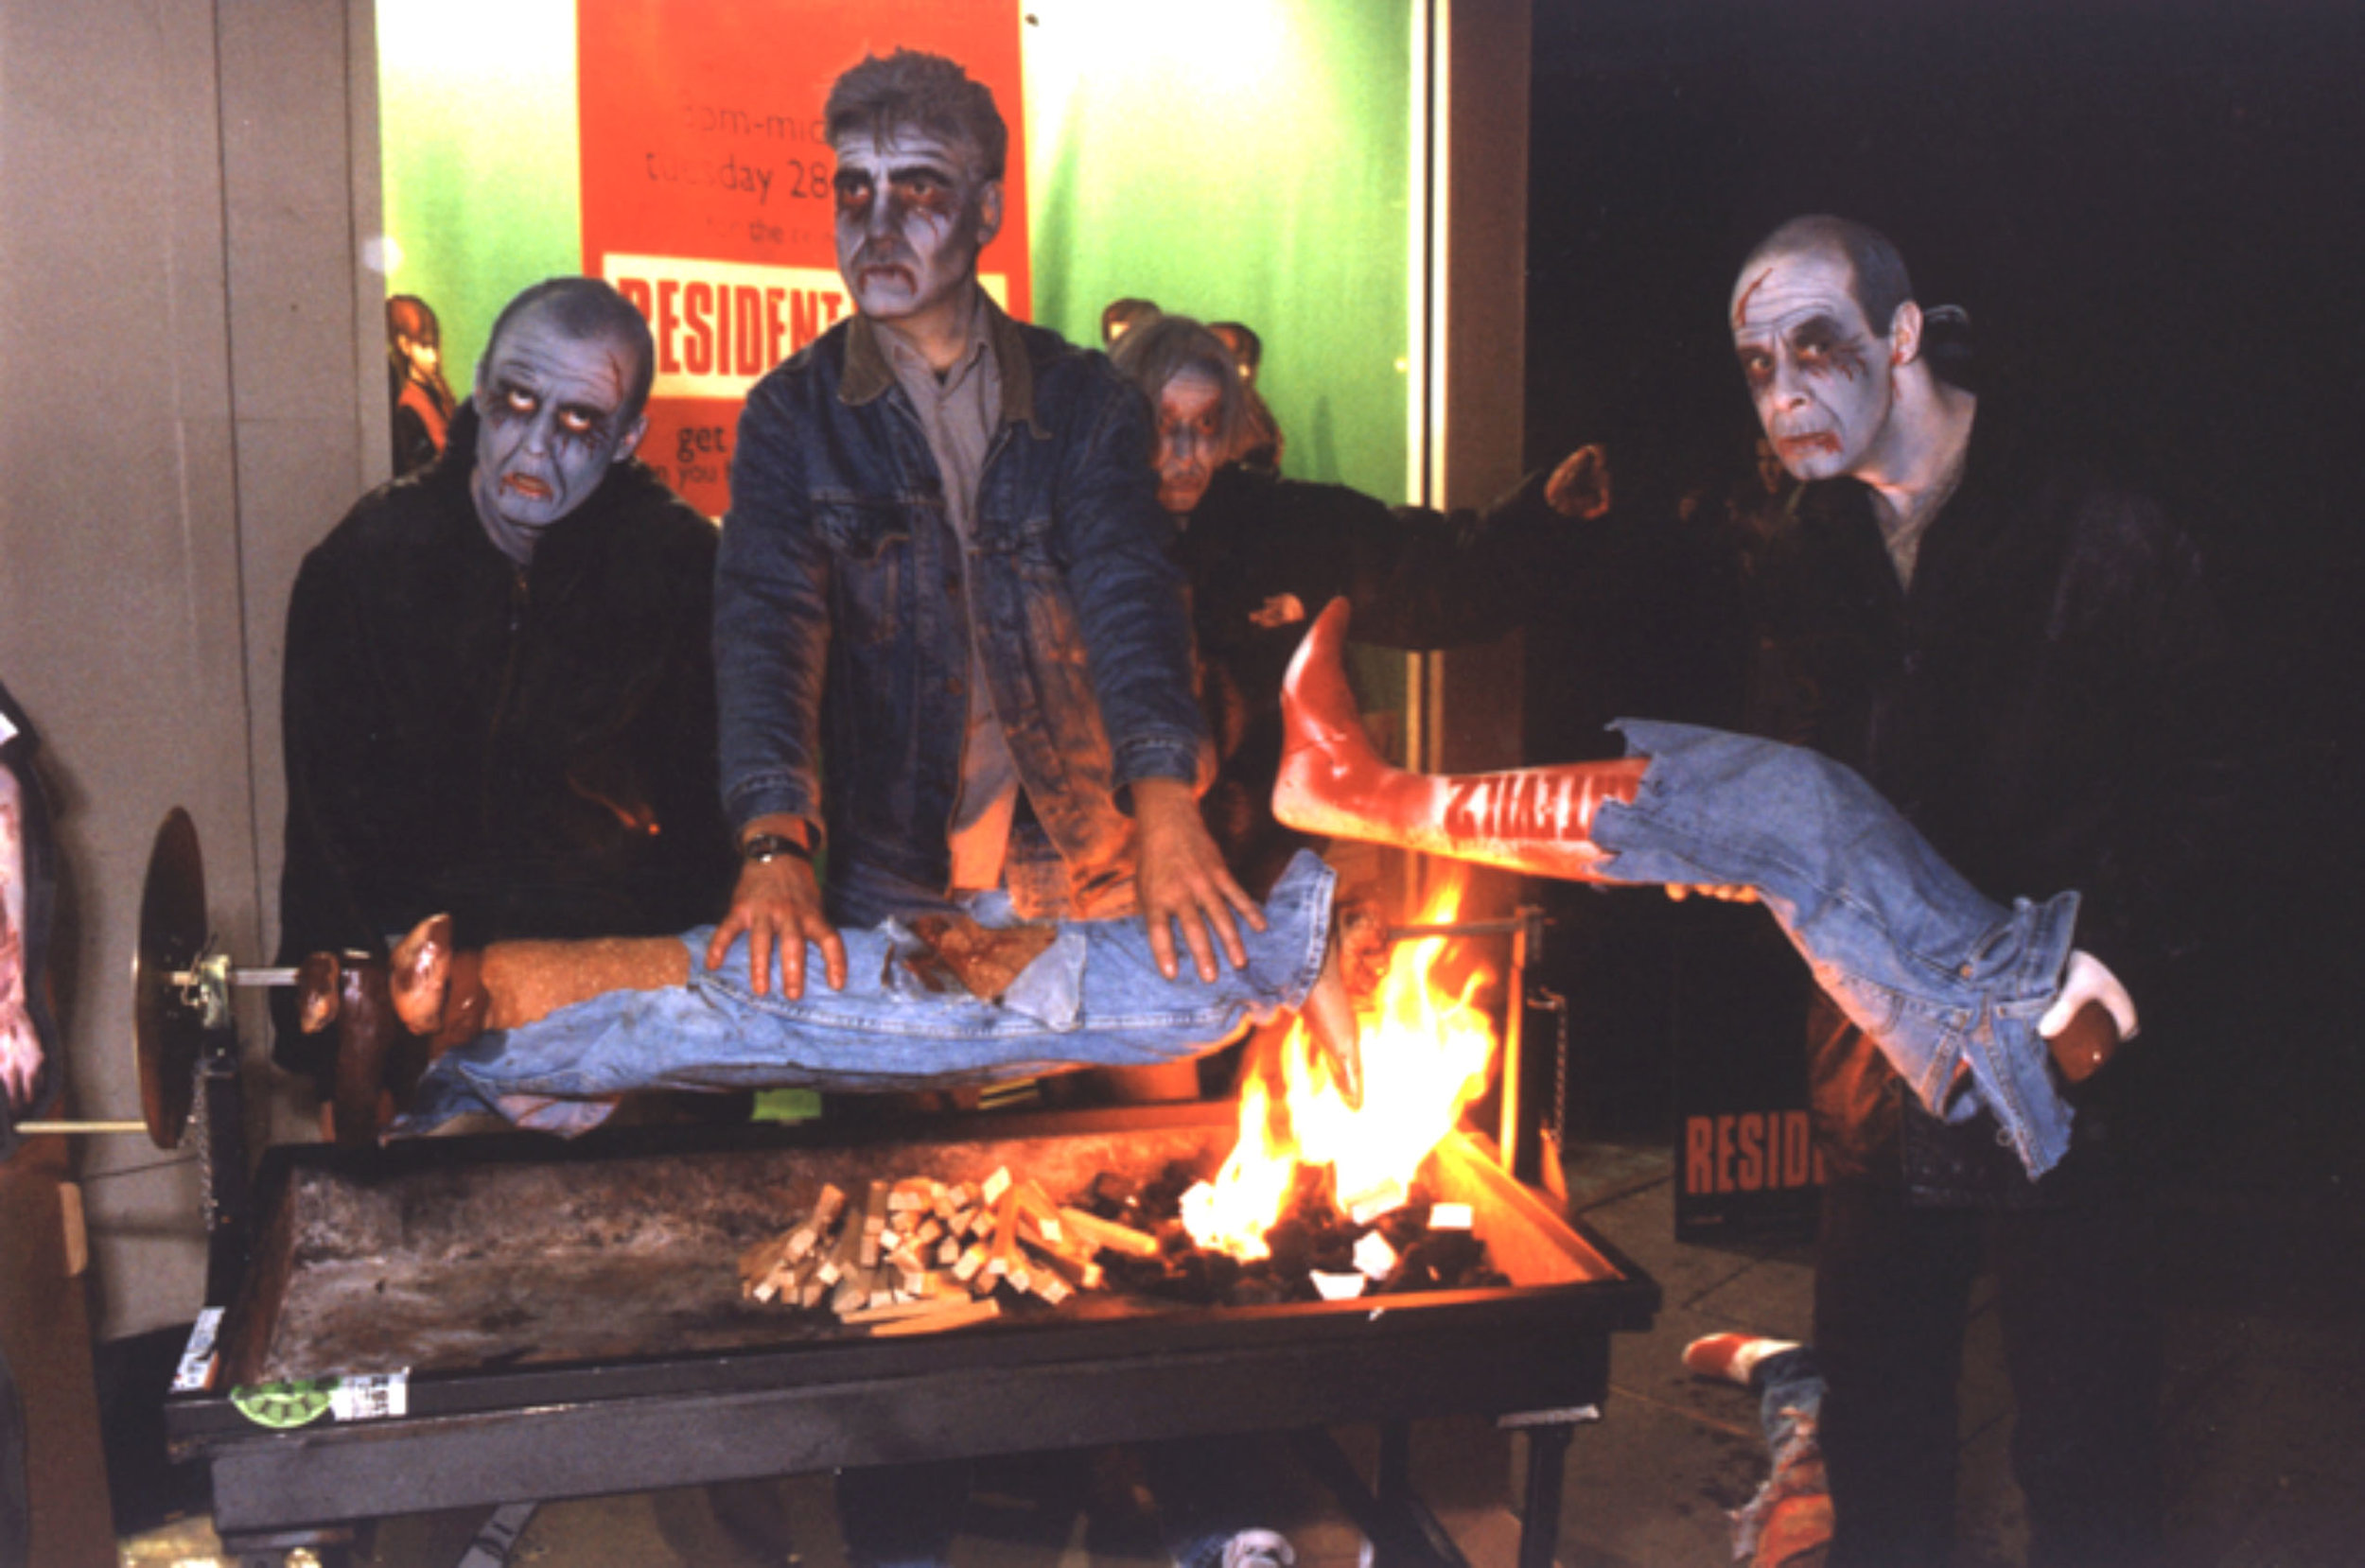 RESIDENT EVIL /  Serving human kebabs outside The Virgin Megastore at midnight for the big launch of the video game.